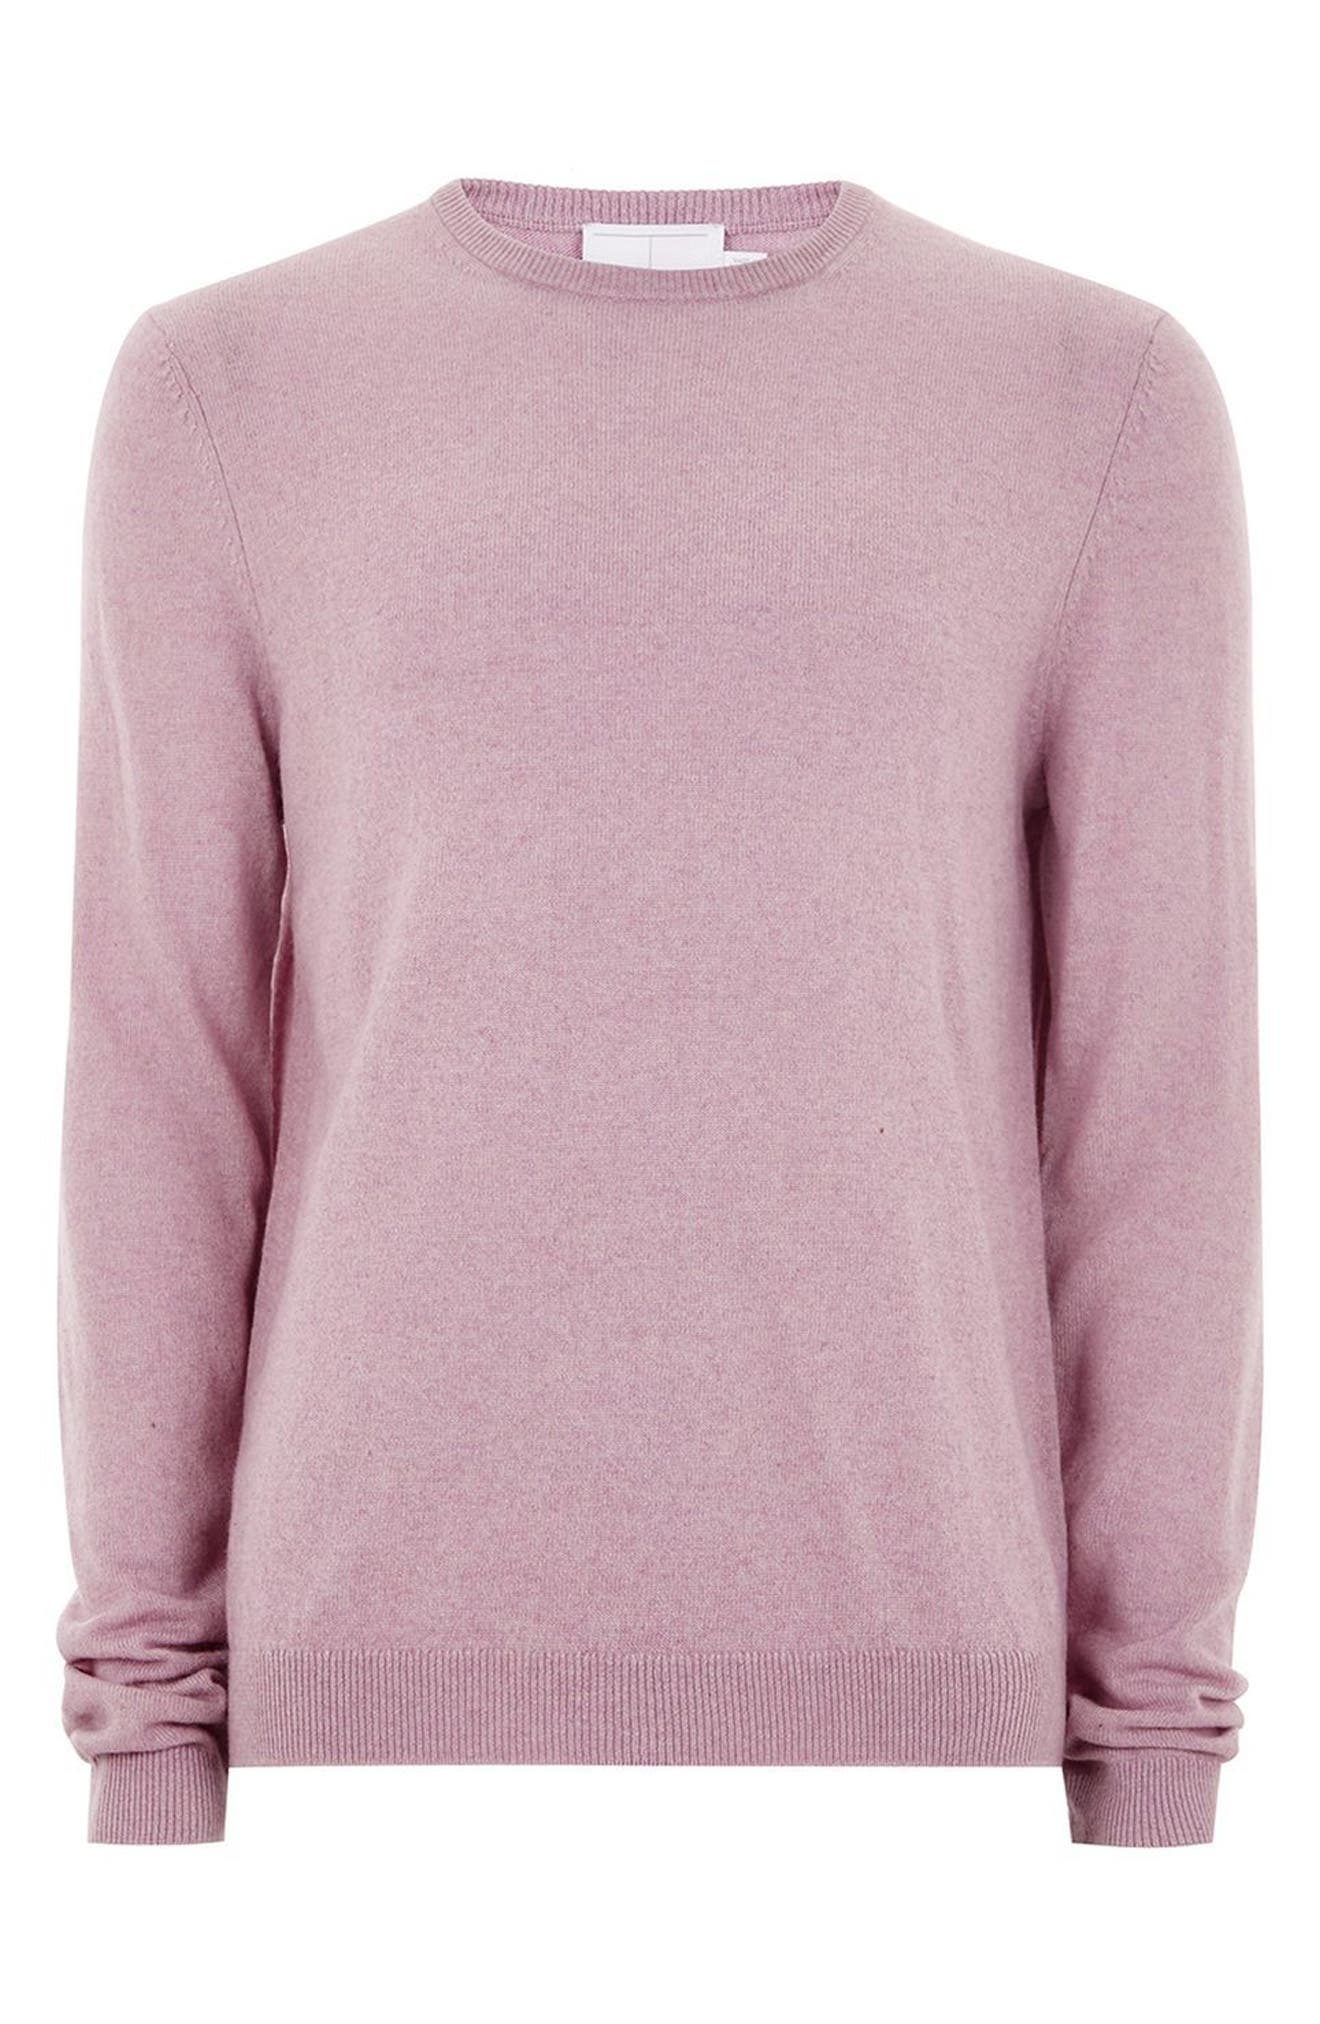 Crewneck Sweater,                             Alternate thumbnail 3, color,                             650